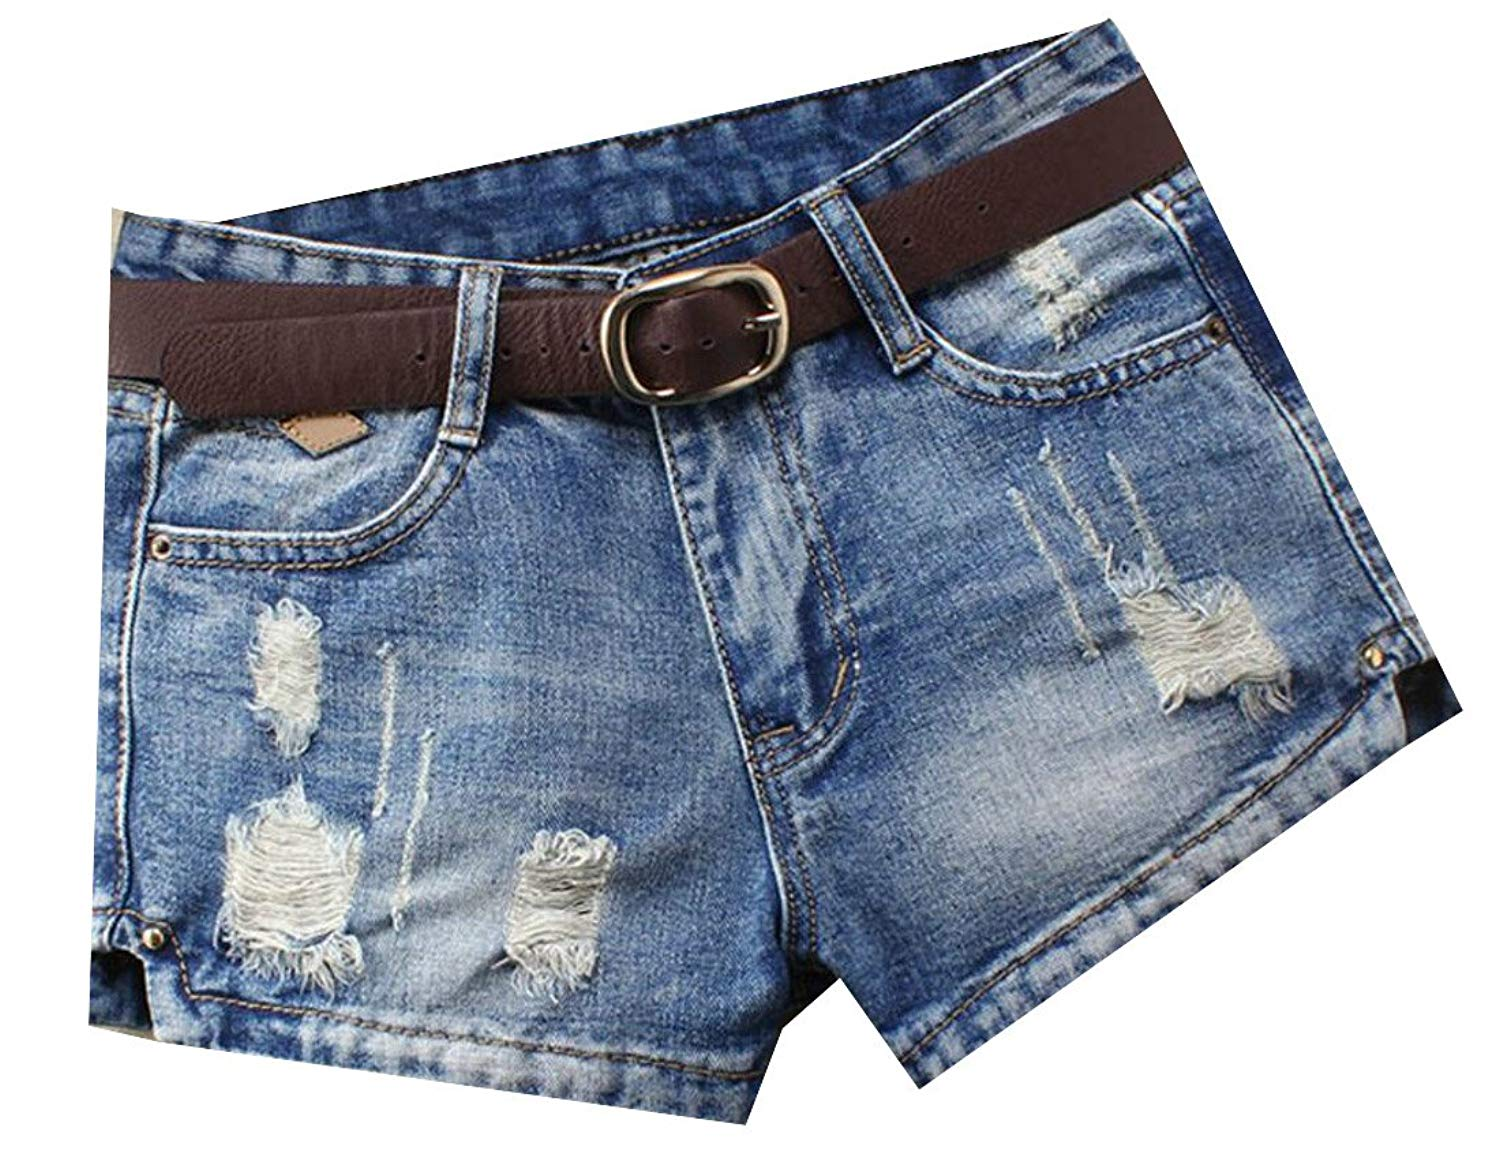 fe4a49f366 Get Quotations · SHOWNO-Women No Belted Shorts Mid Waisted Baggy Ripped  Holes Denim Shorts Jeans